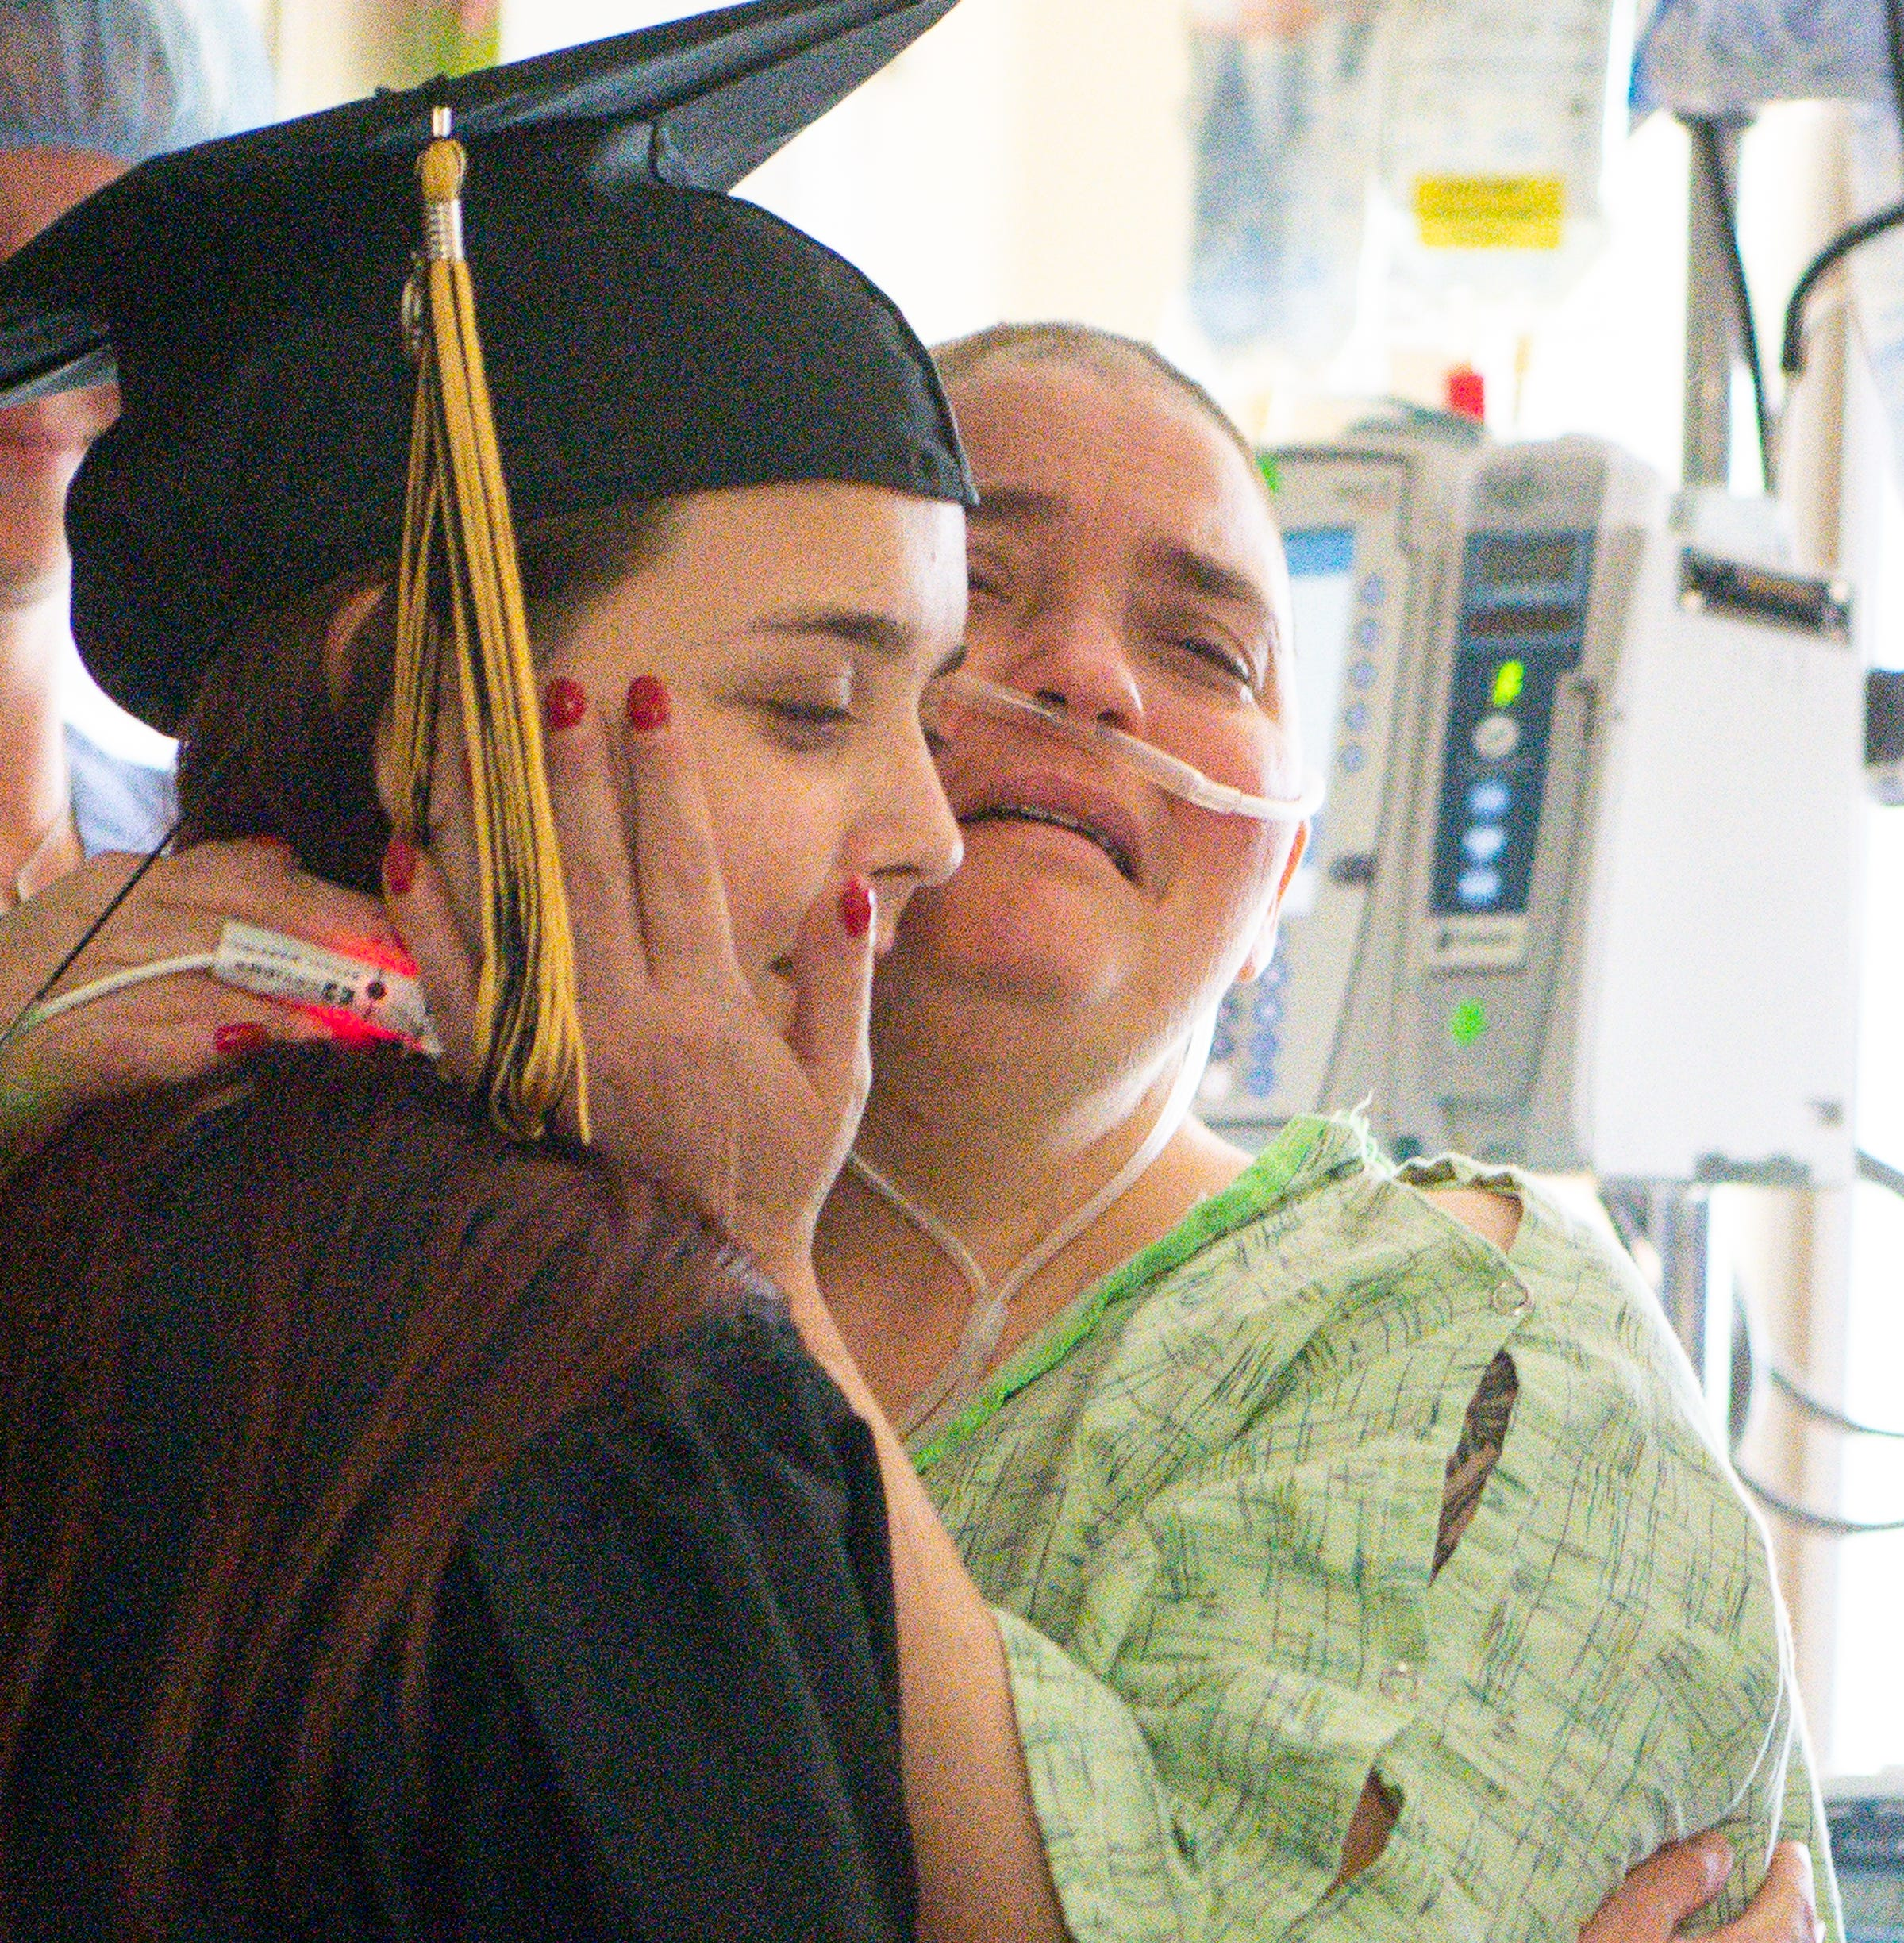 When mom in hospital couldn't attend daughter's graduation, they brought the ceremony to her